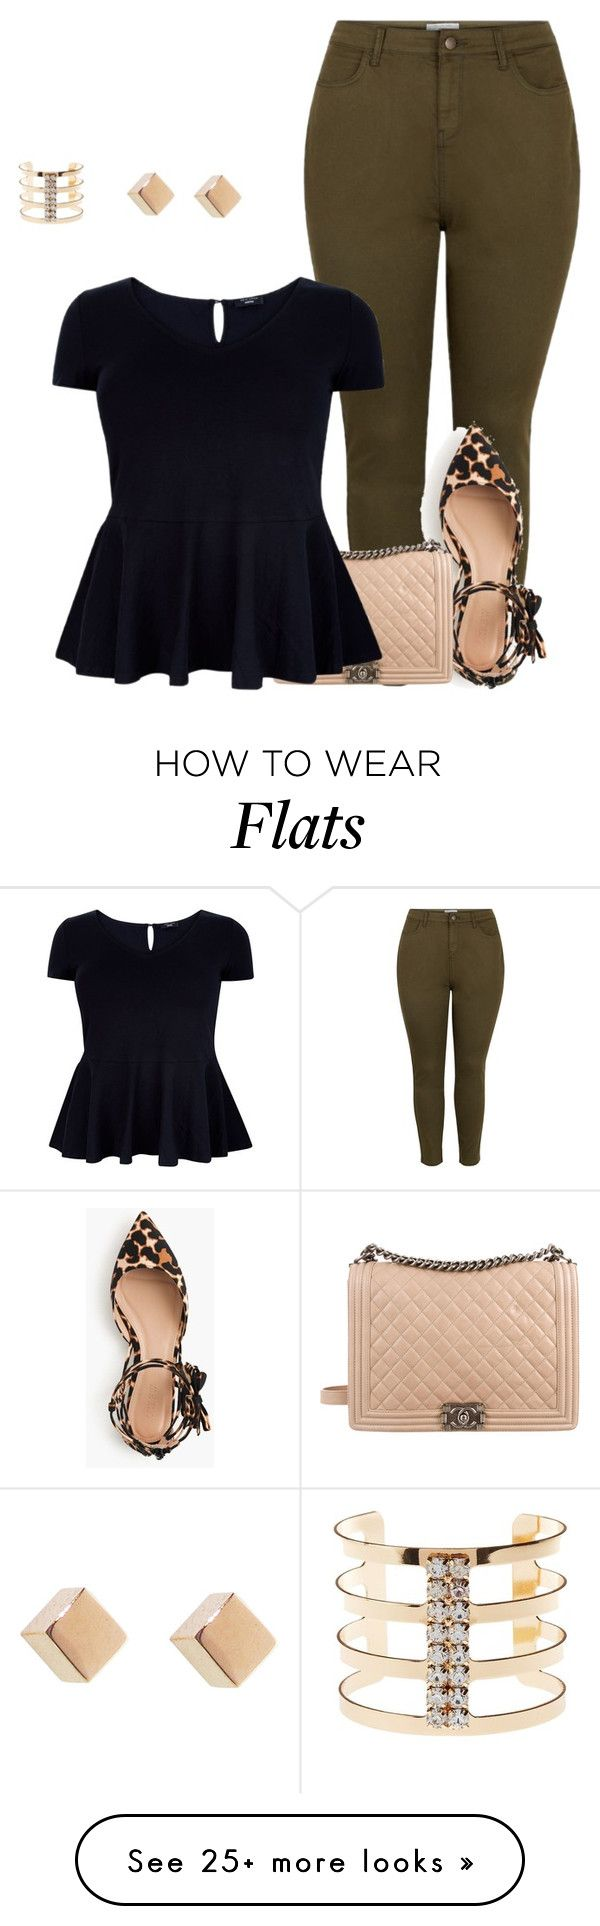 15 plus size outfits with peplum tops you can wear too 6 - 15-plus-size-outfits-with-peplum-tops-you-can-wear-too-6